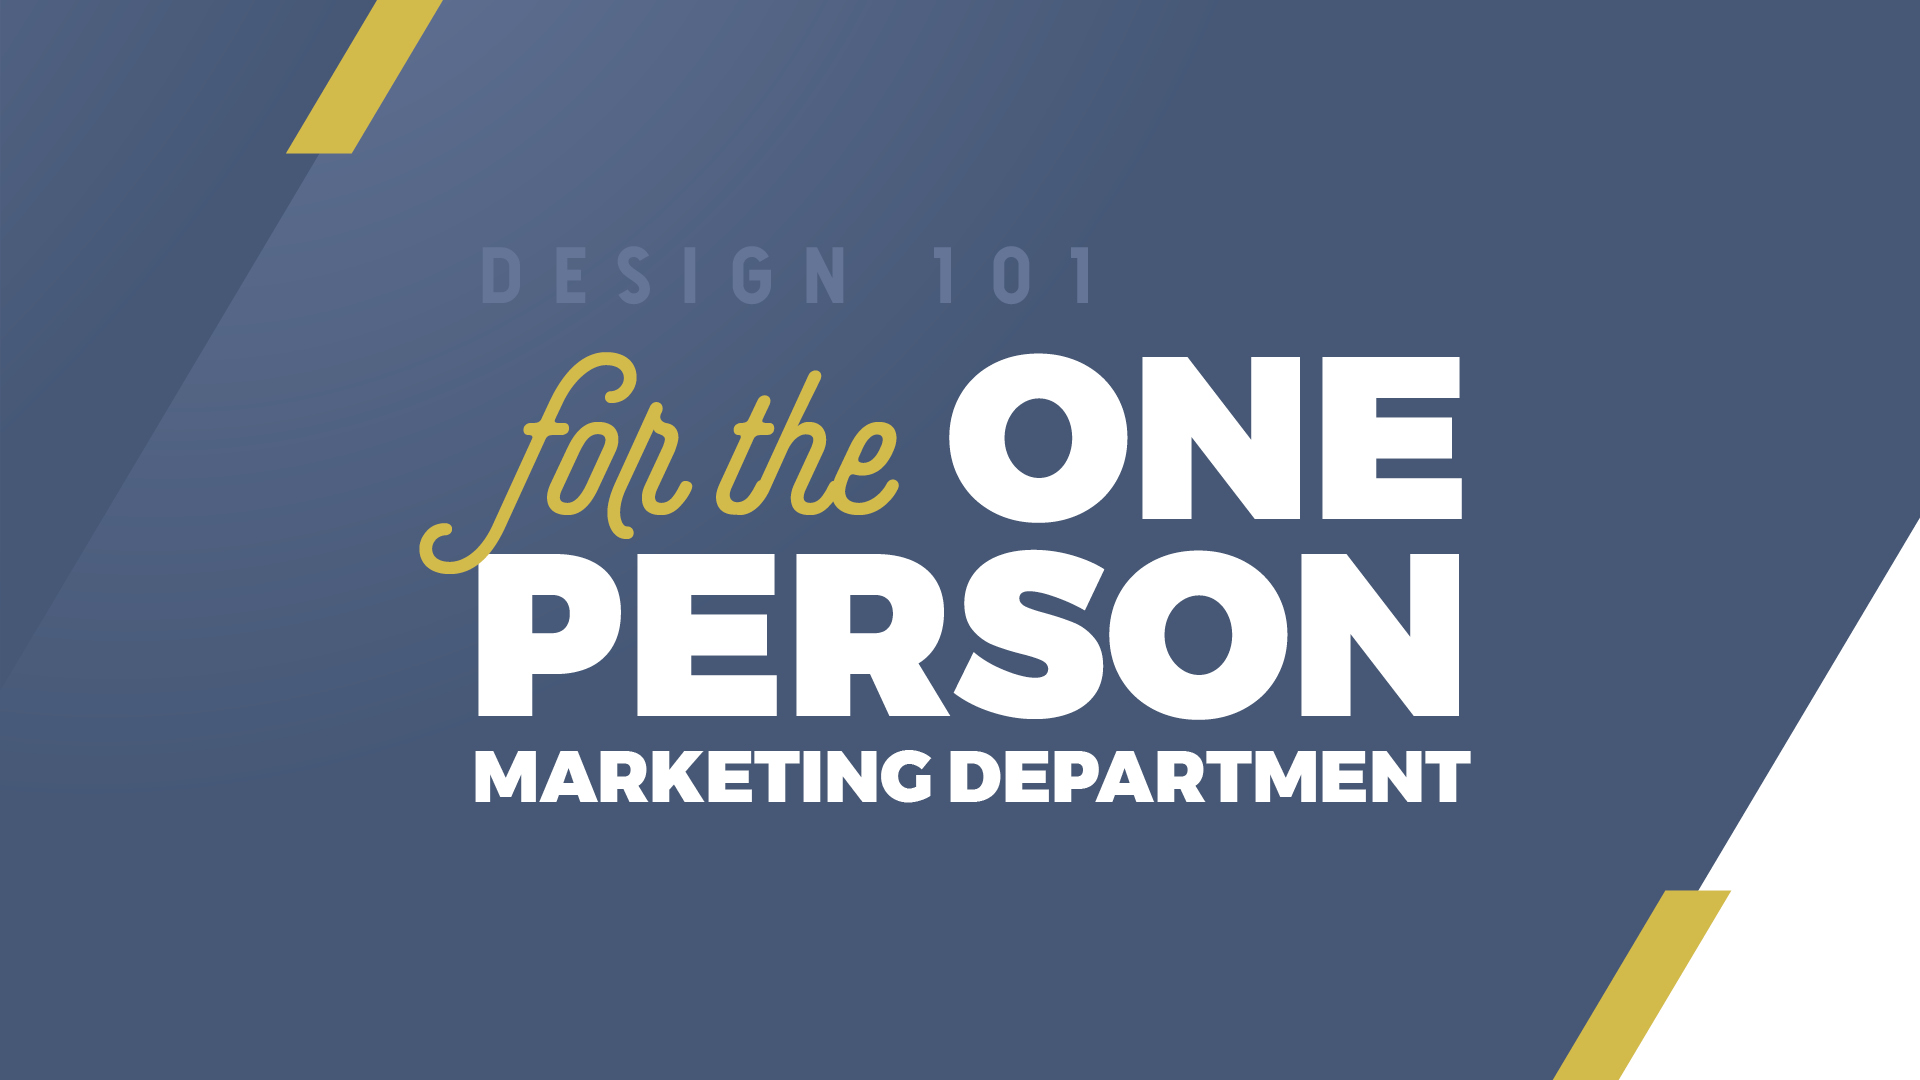 Design 101 For the One-Person Marketing Department